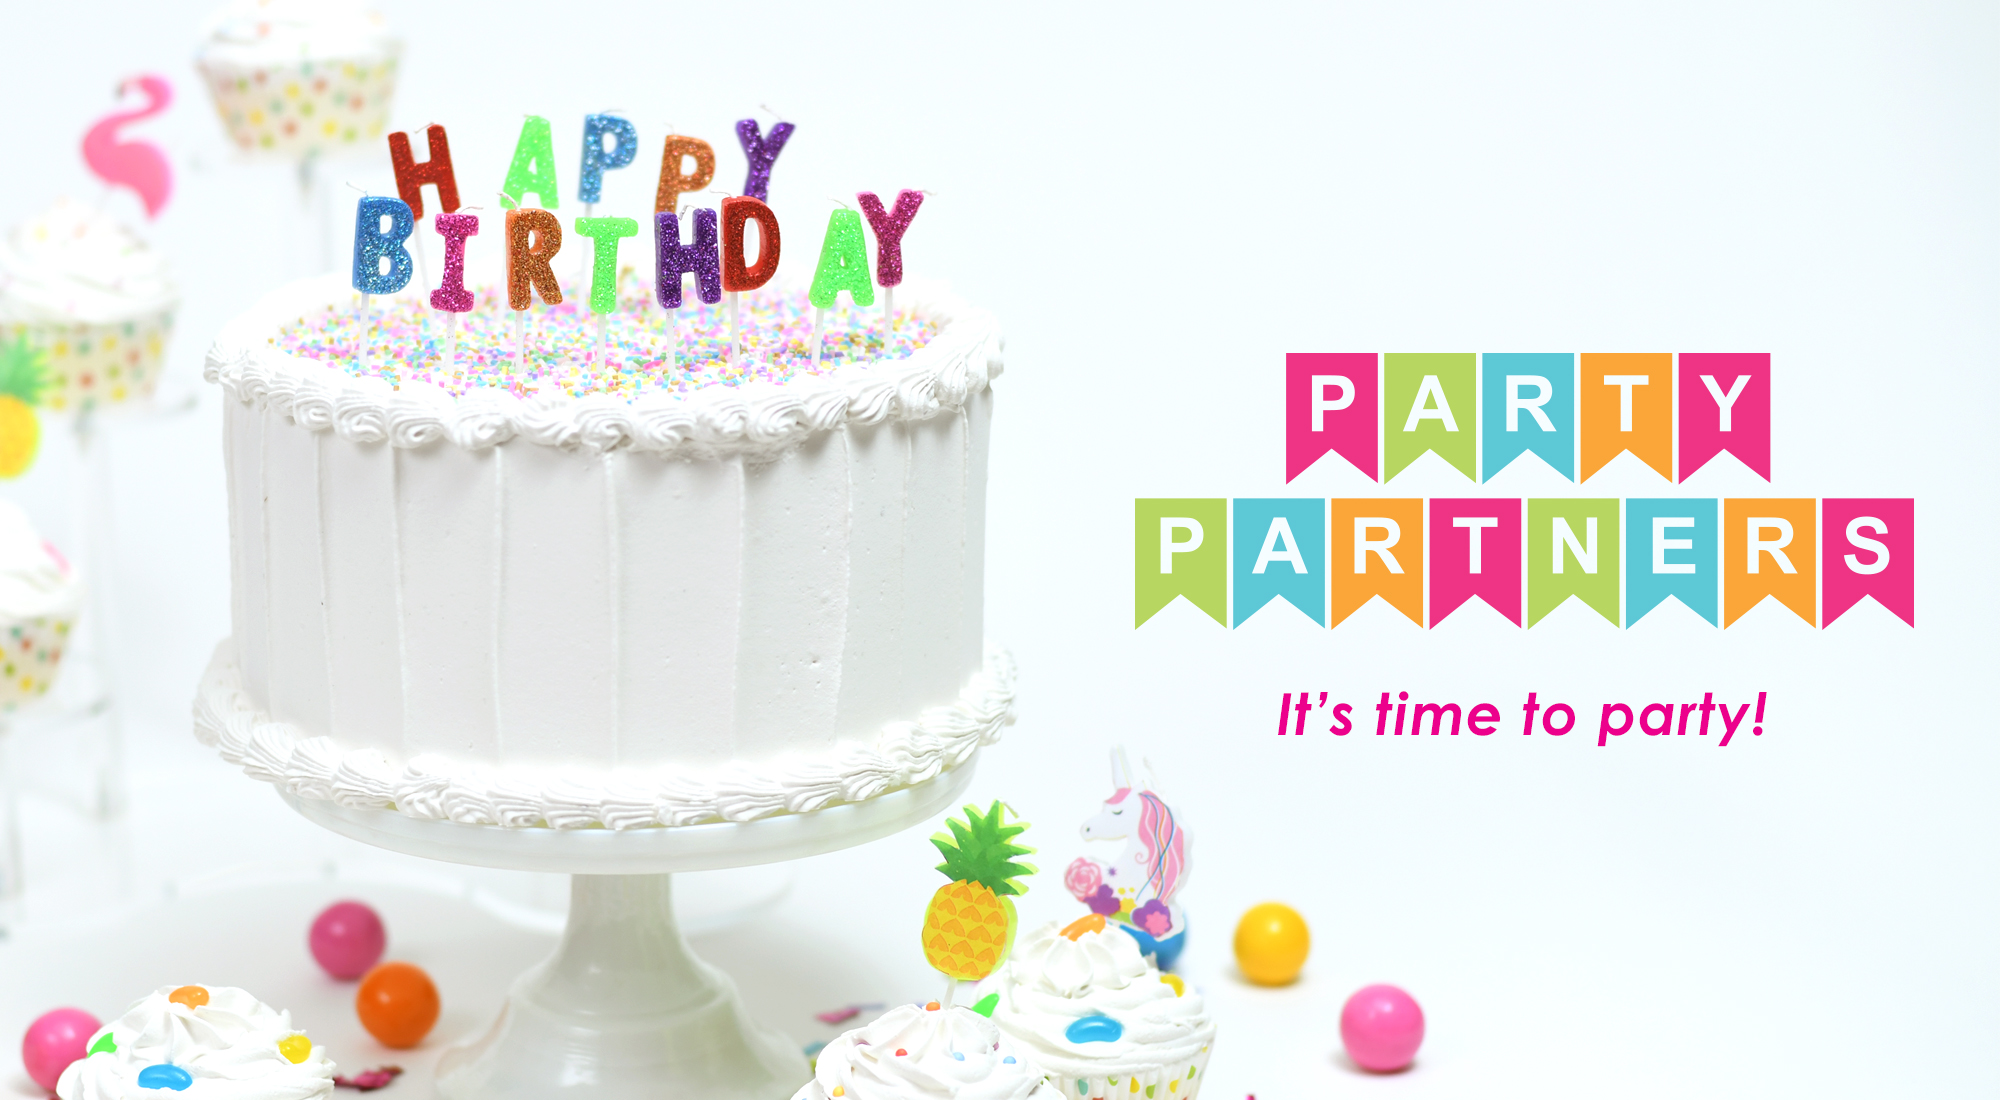 Party-Partners-Teaser-Image-2.jpg